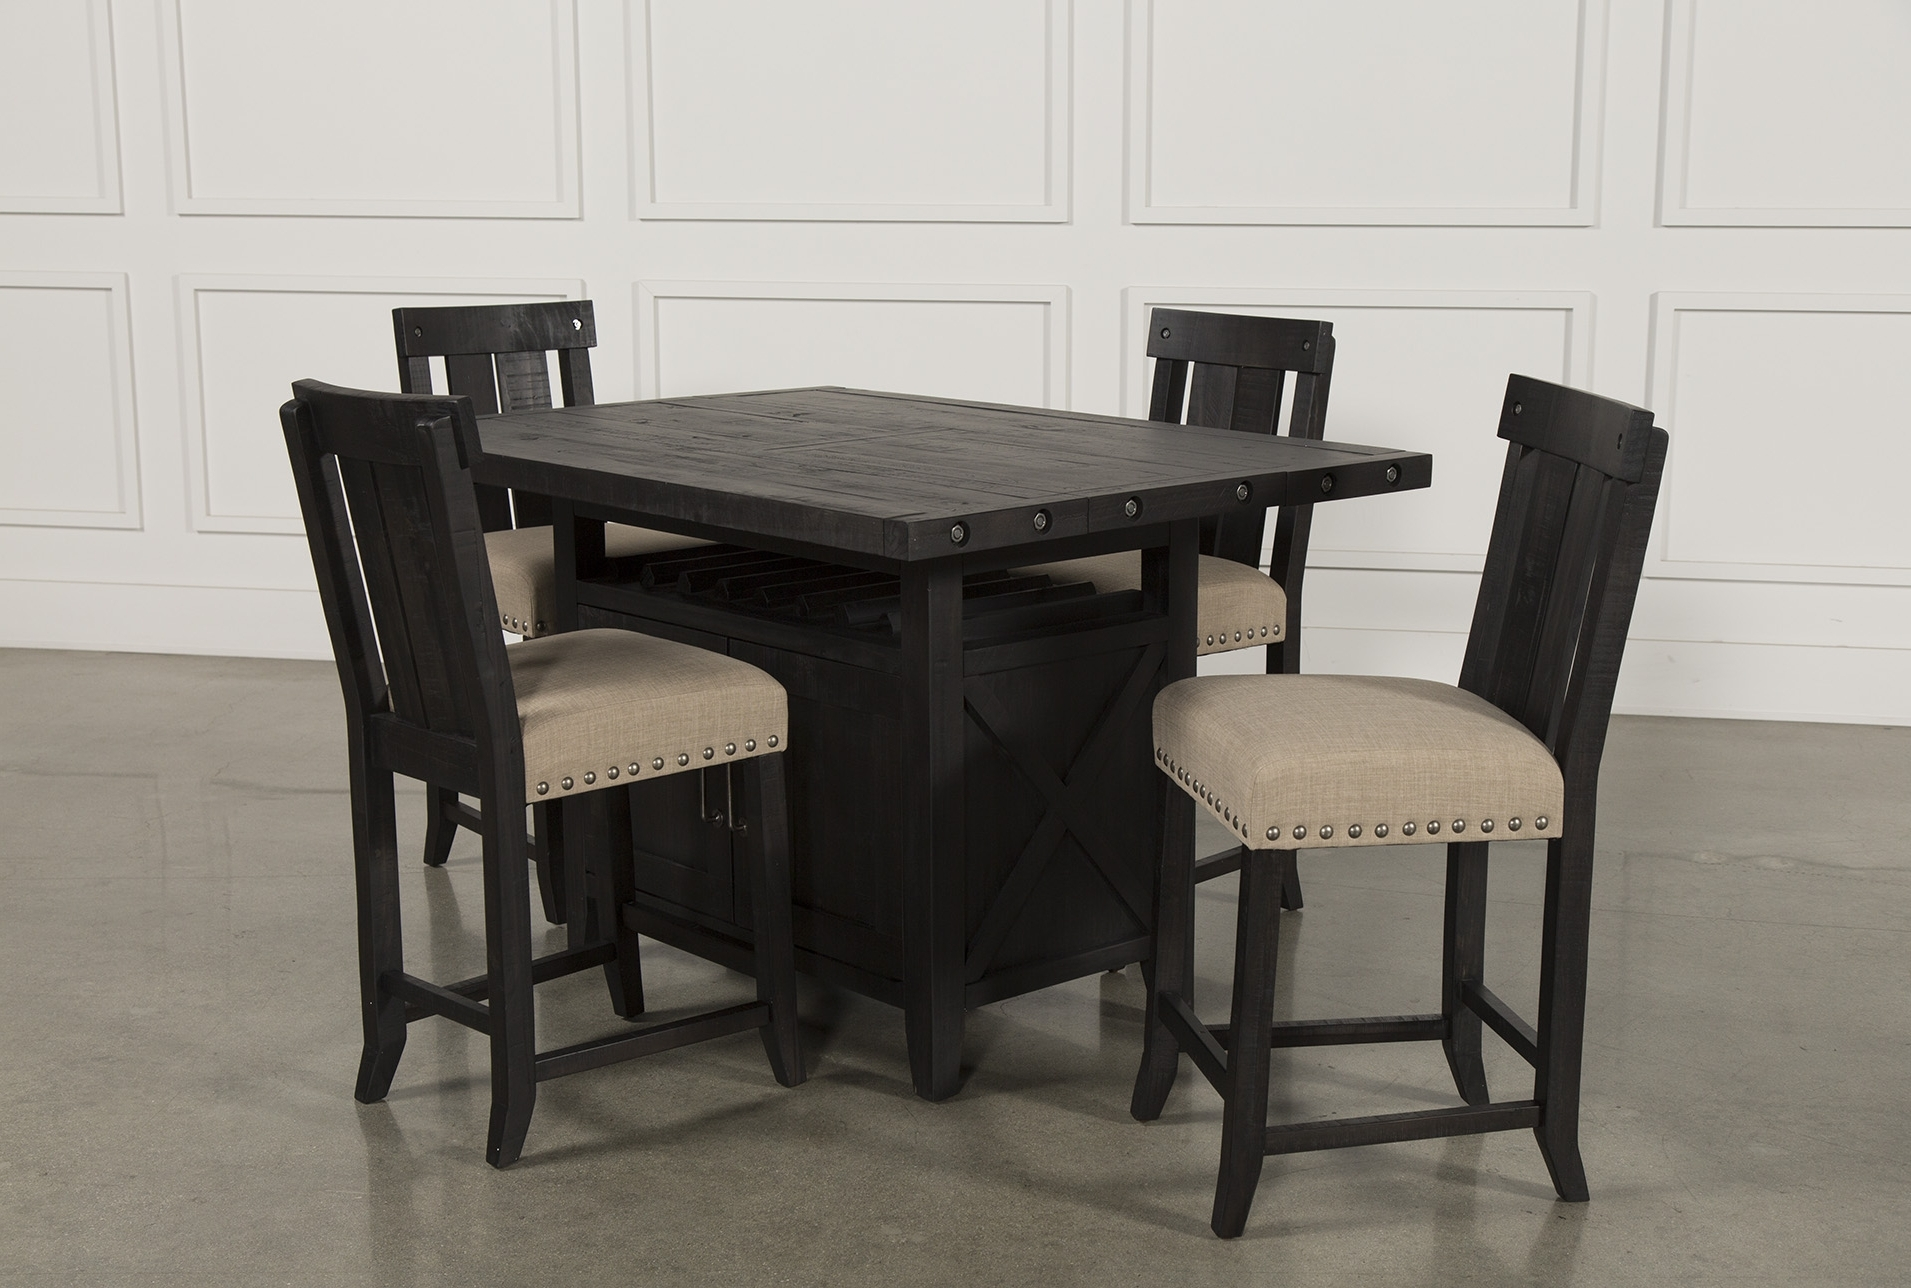 Global Furniture Bar Table Black In Famous Jaxon Grey 5 Piece Round Extension Dining Sets With Upholstered Chairs (Gallery 21 of 25)